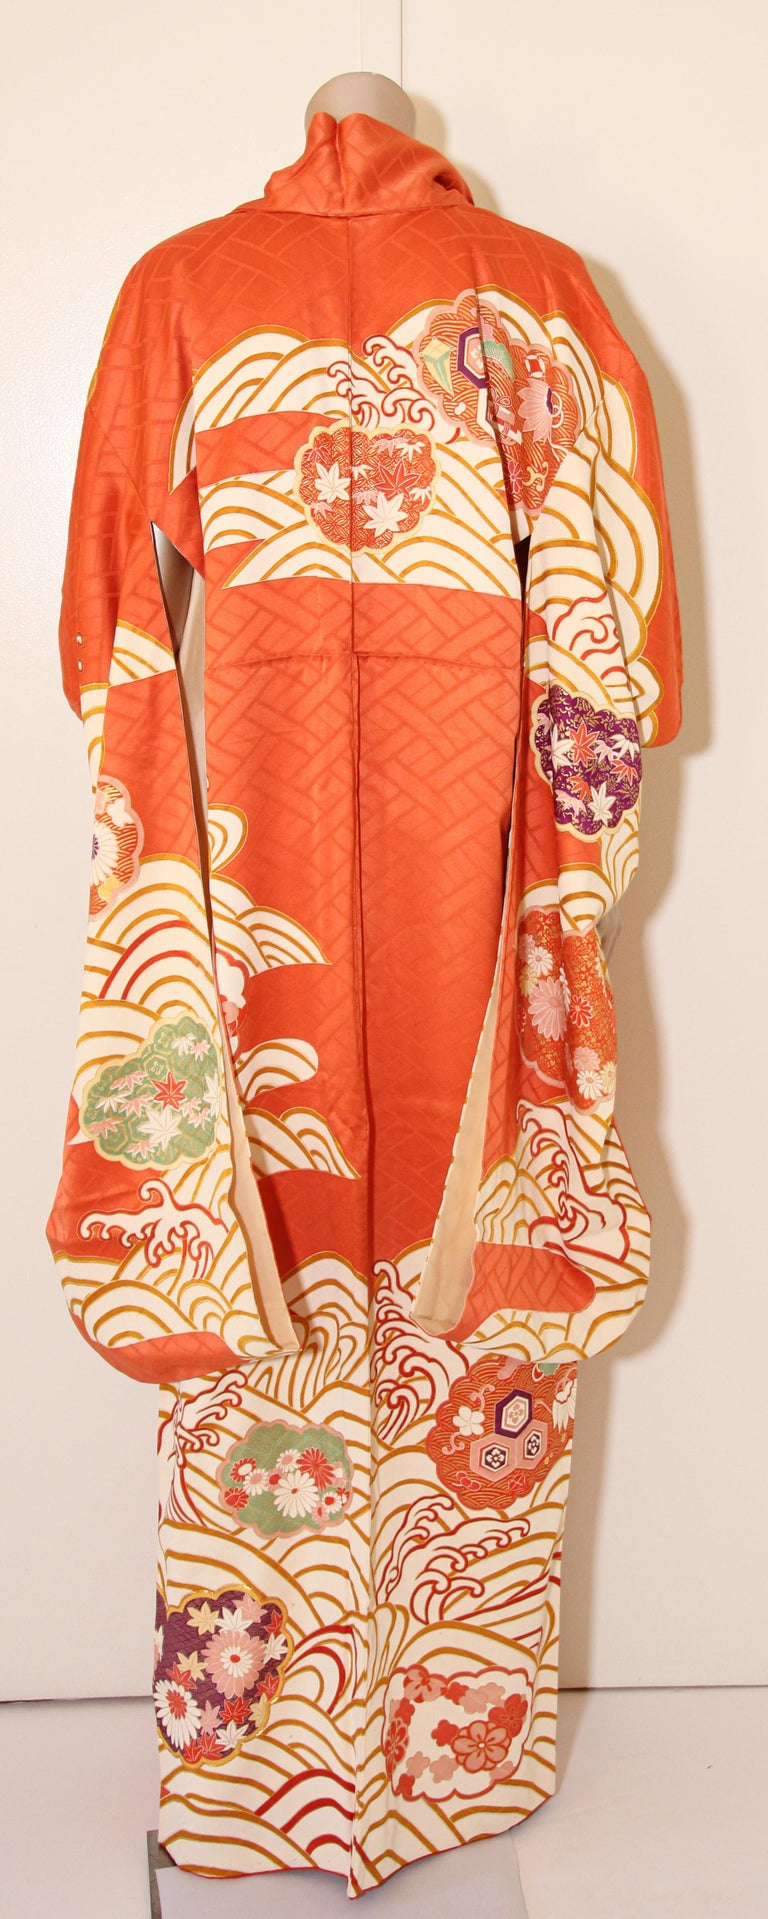 Fine vintage Japanese silk kimono.